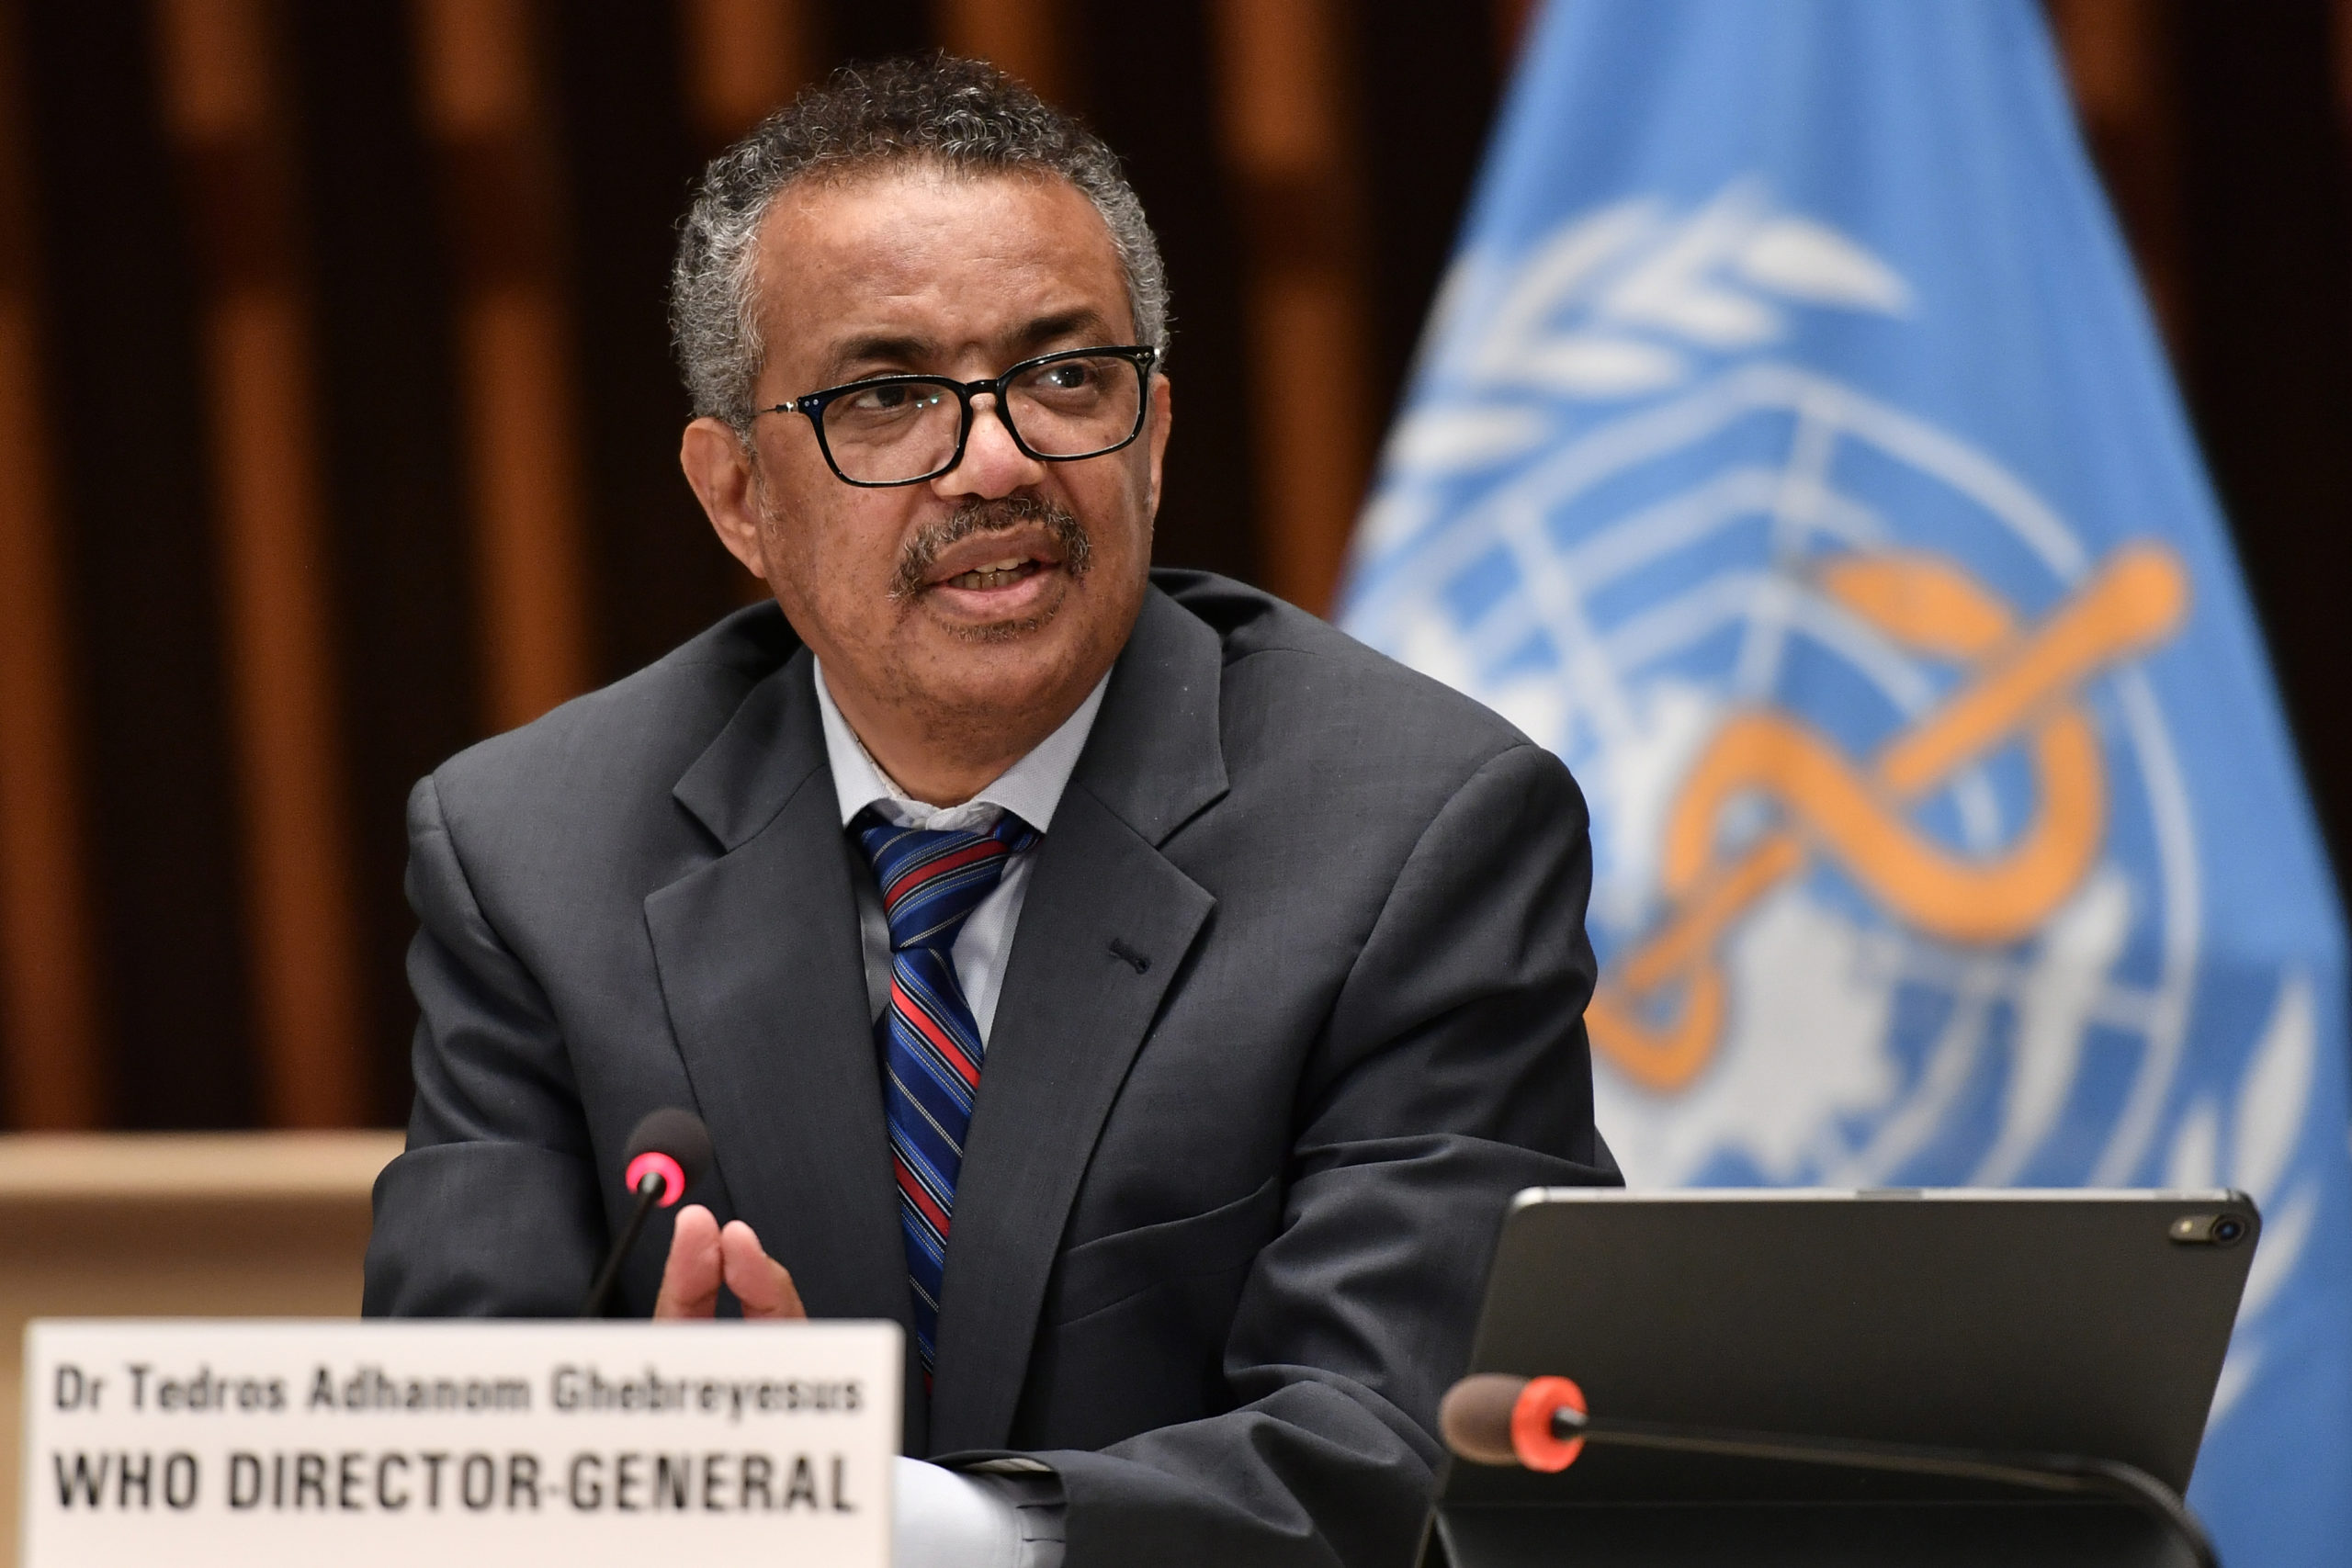 World Health Organization (WHO) Director-General Tedros Adhanom Ghebreyesus attends a press conference organised by the Geneva Association of United Nations Correspondents (ACANU) amid the COVID-19 outbreak, caused by the novel coronavirus, on July 3, 2020 at the WHO headquarters in Geneva. (Photo by Fabrice COFFRINI / POOL / AFP) (Photo by FABRICE COFFRINI/POOL/AFP via Getty Images)